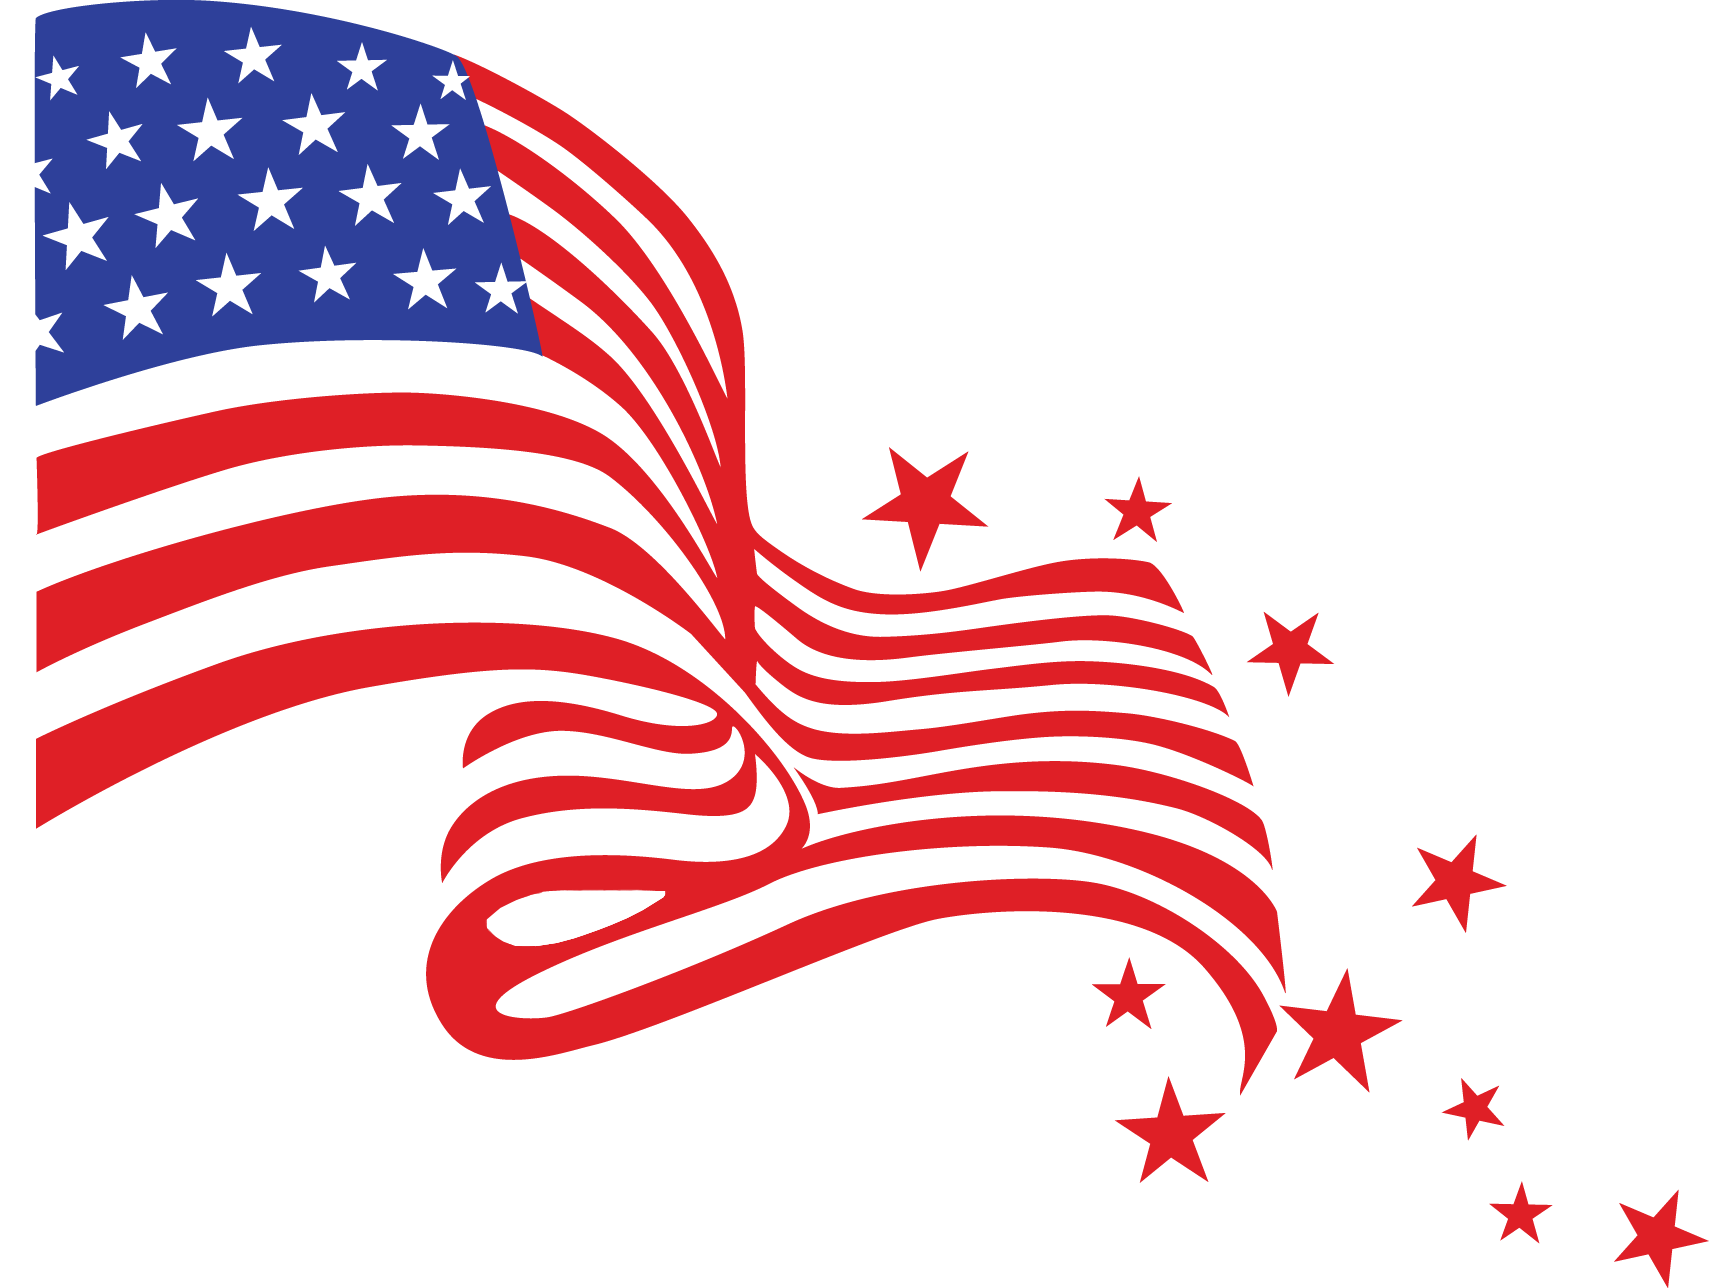 Flags clipart. Transparent usa flag png